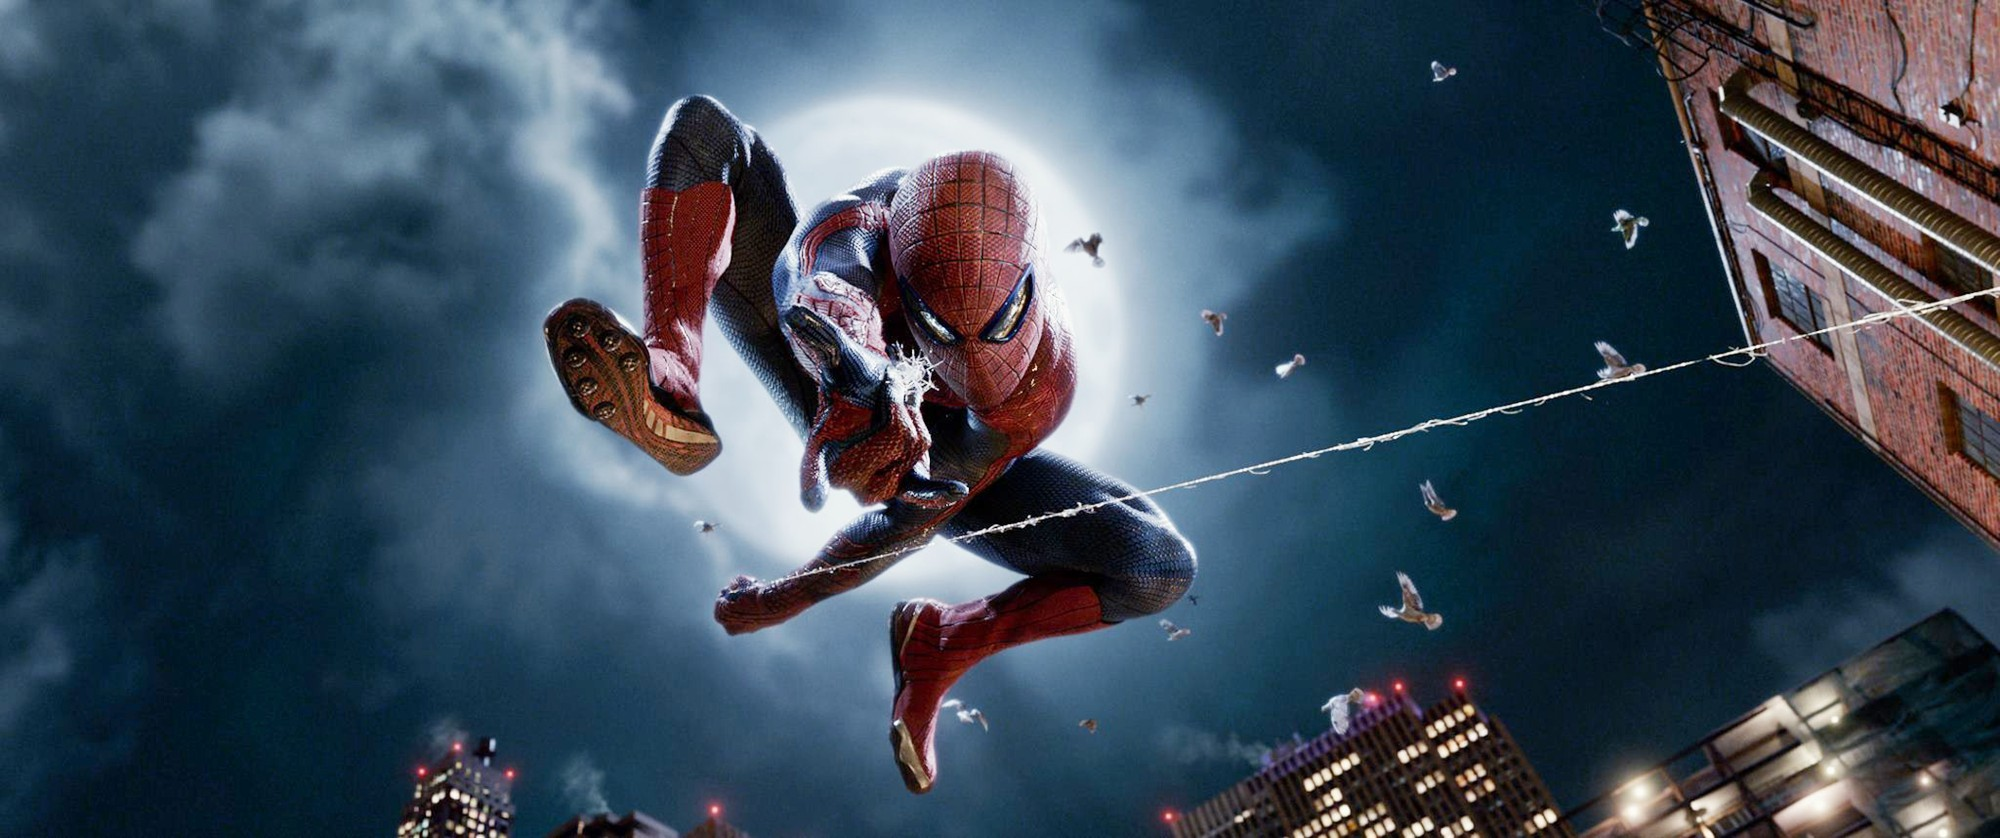 Sony Plans a Female Superhero Film in Spider-Man Universe